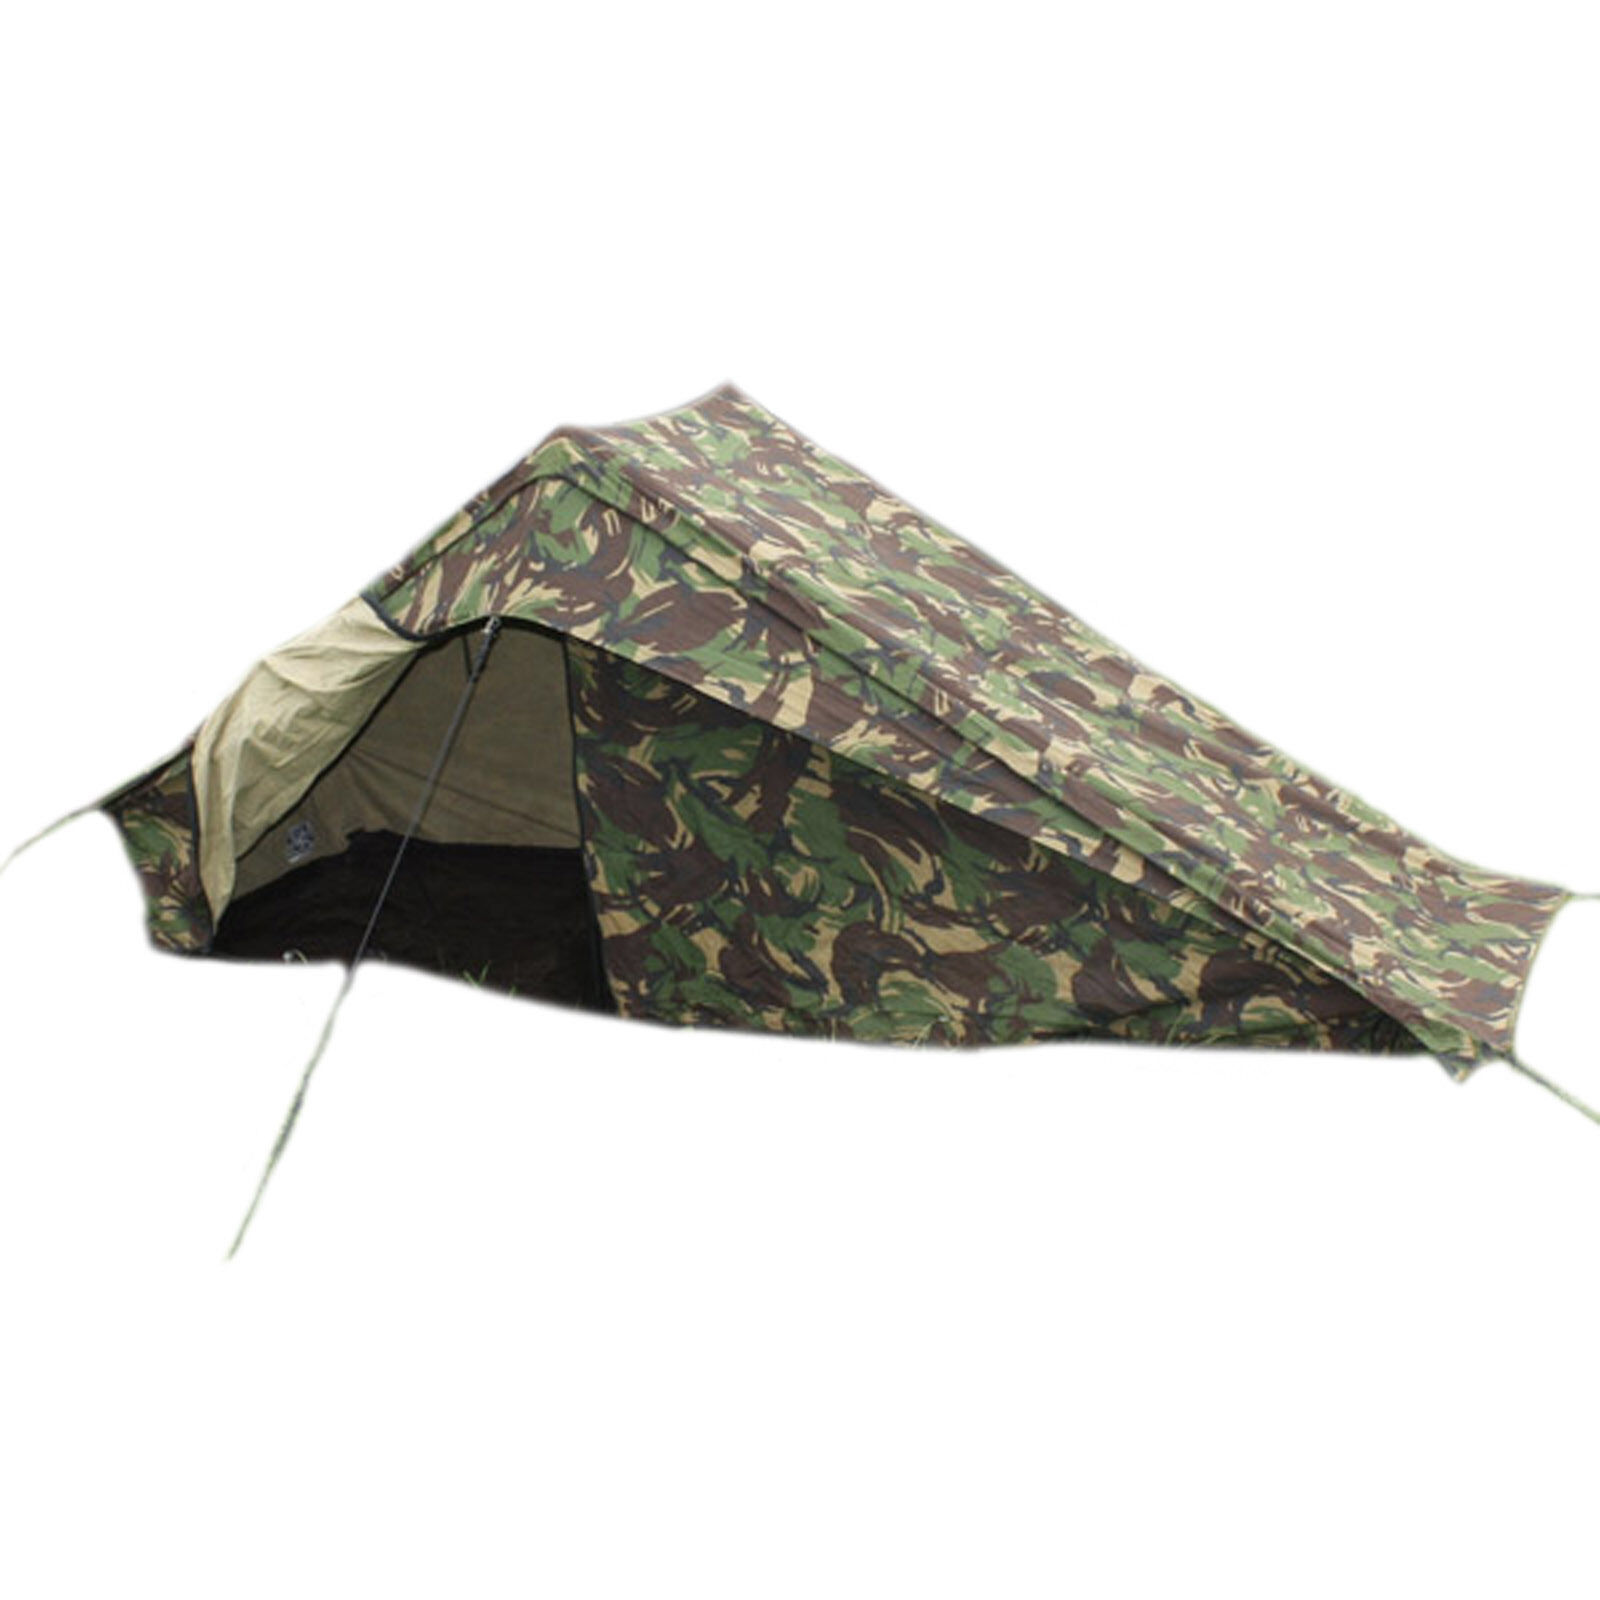 Dutch Army Camouflage 2 Men Tent With Groundsheet Pegs & Poles GRADE 1